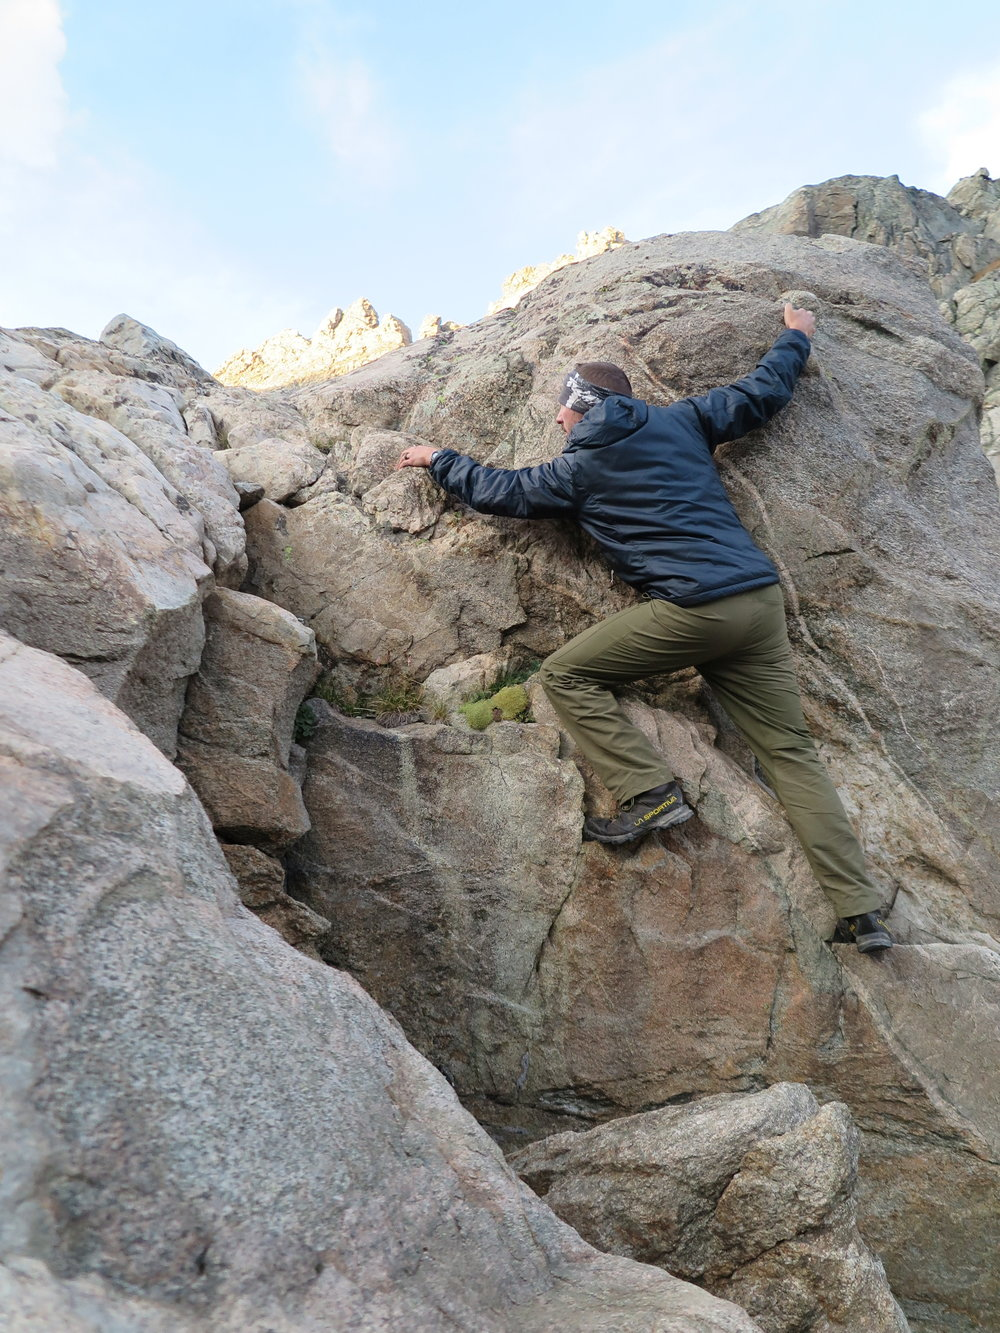 Aaron, free solo at Alpine Lakes Basin. 5.13d.